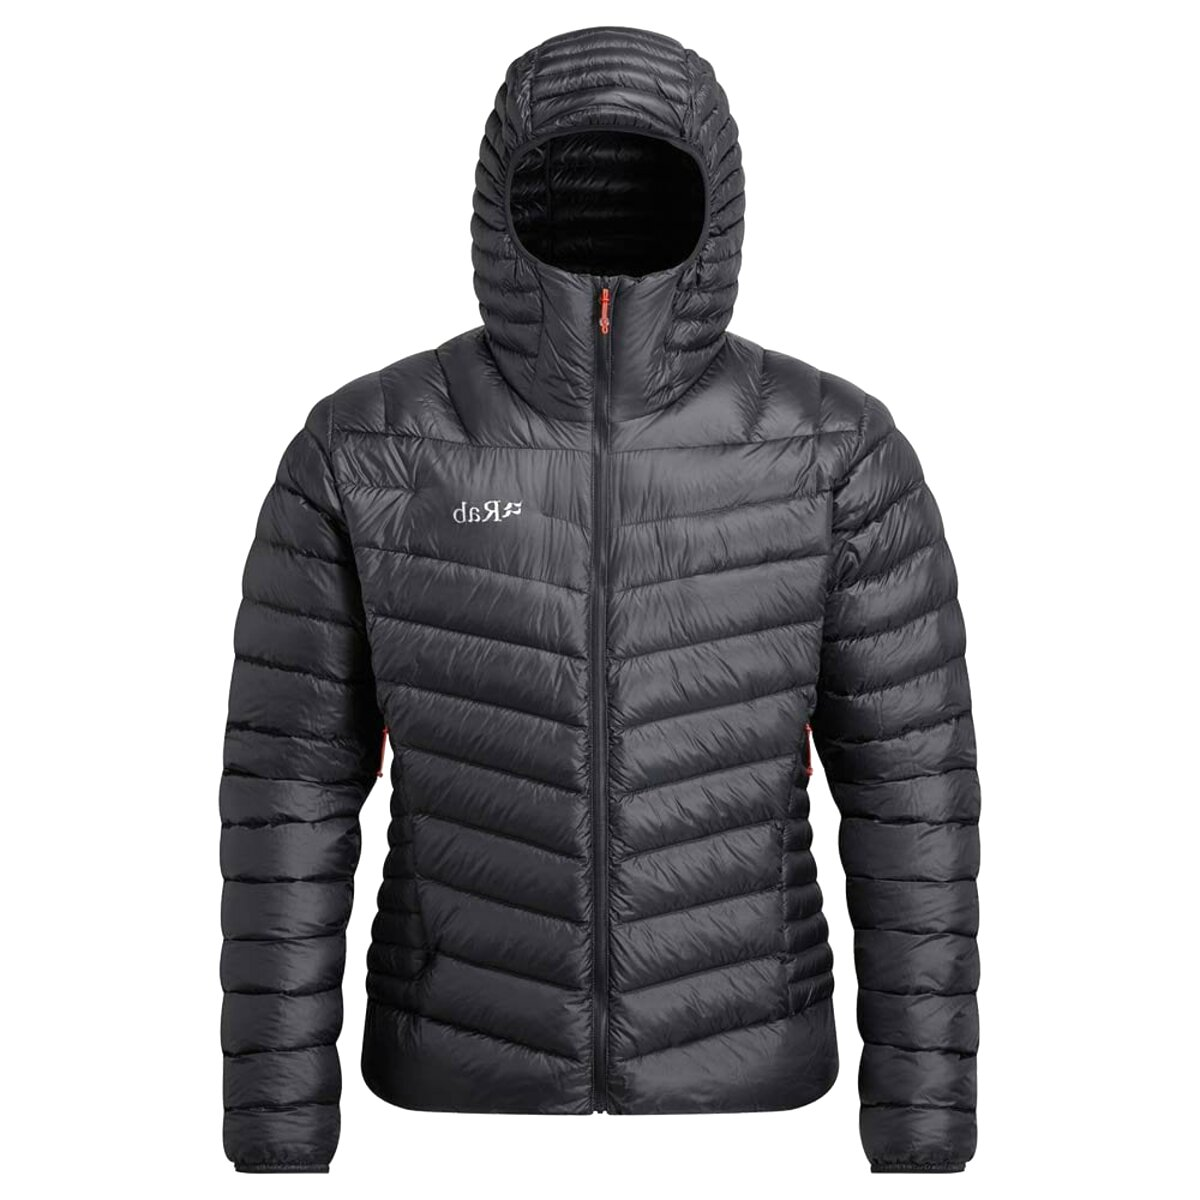 rab down gilet for sale